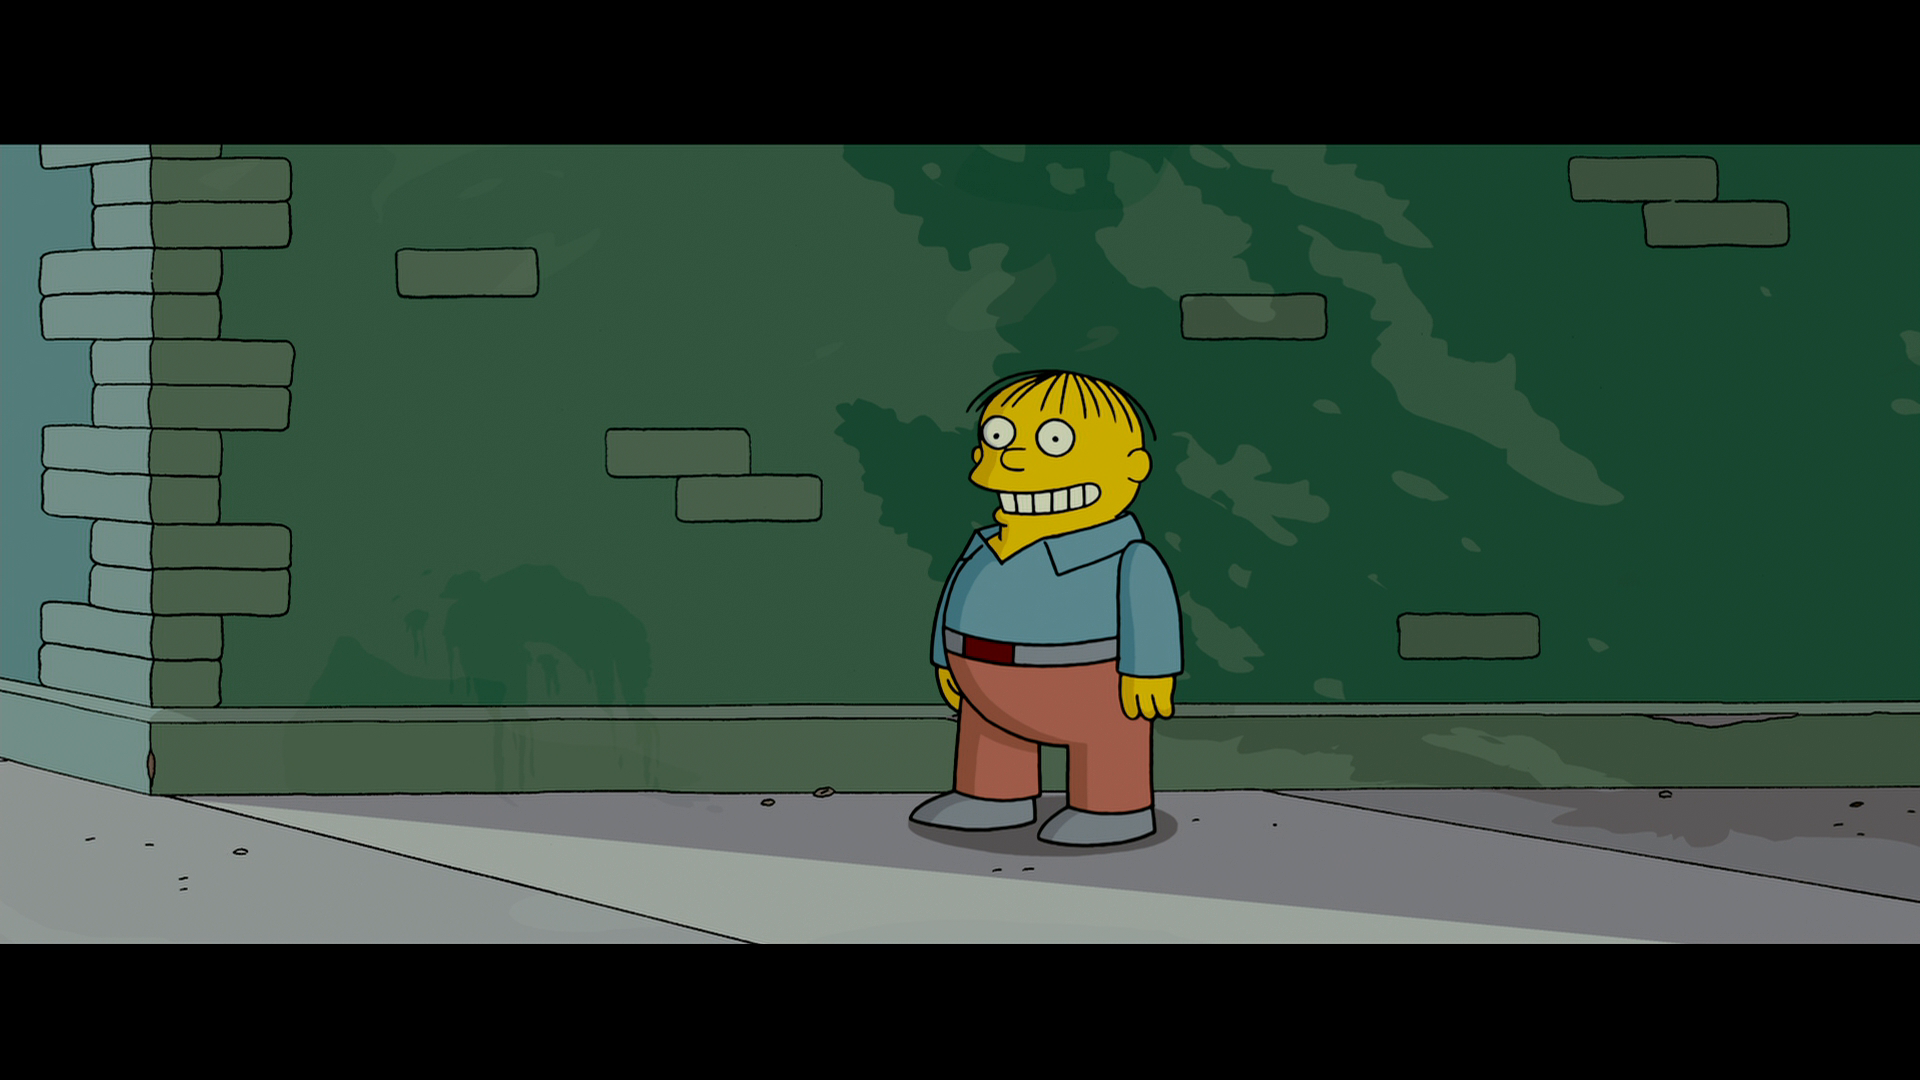 The Simpsons Movie 2007 BluRay REMUX 1080p AVC DTS-HD MA 5.1 - The Legend